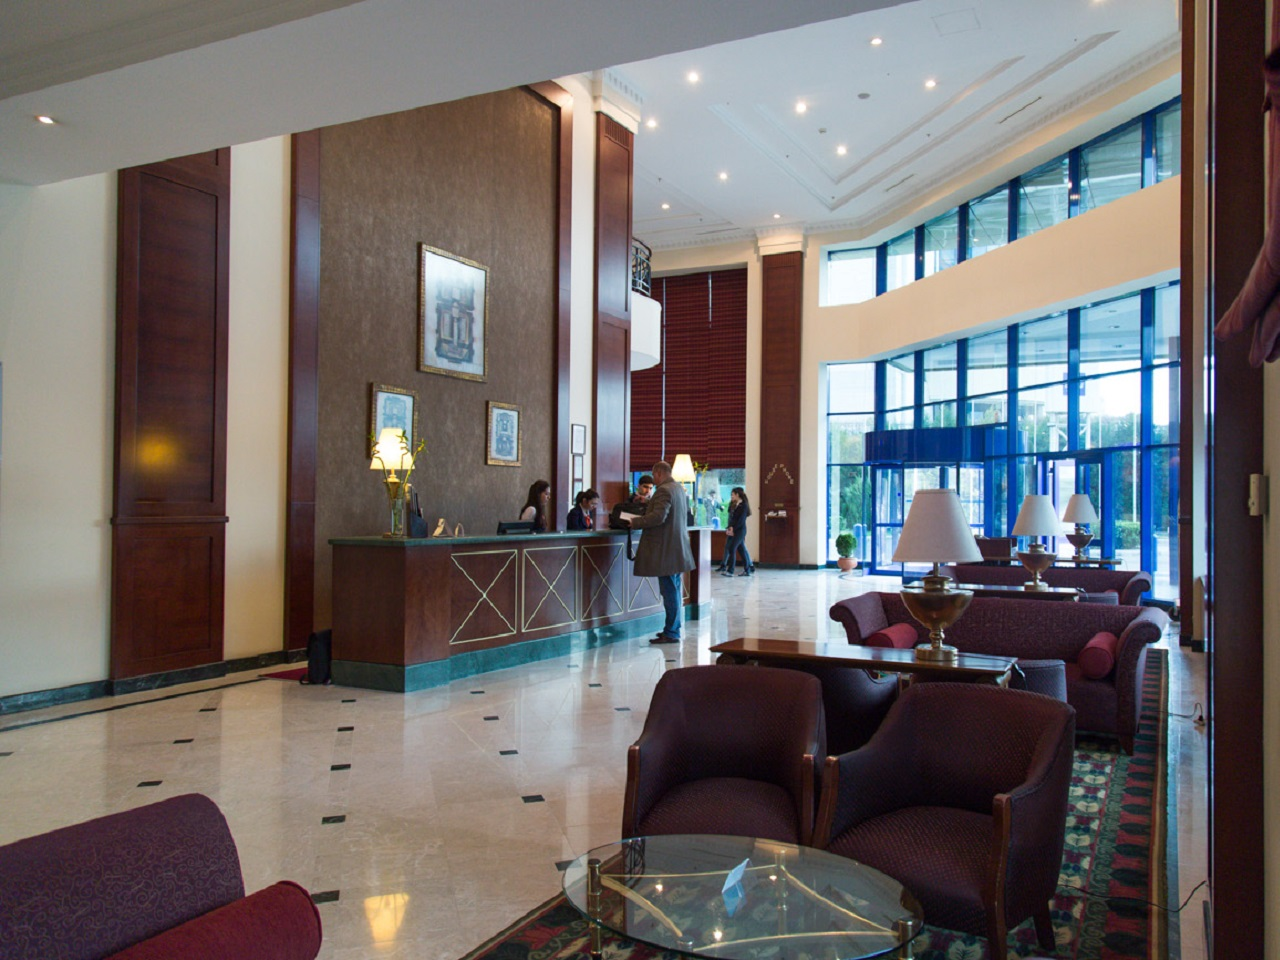 the history of hotel radisson marketing essay Focusing on radisson limerick the mixing and matching of marketing activities do go very much side by side a recent example of that would be hotel reducing its room rate to 99 room only this is the lowest room rate they would offer and this has happened for the first time that radisson has slashed its prices to this low and any other room.